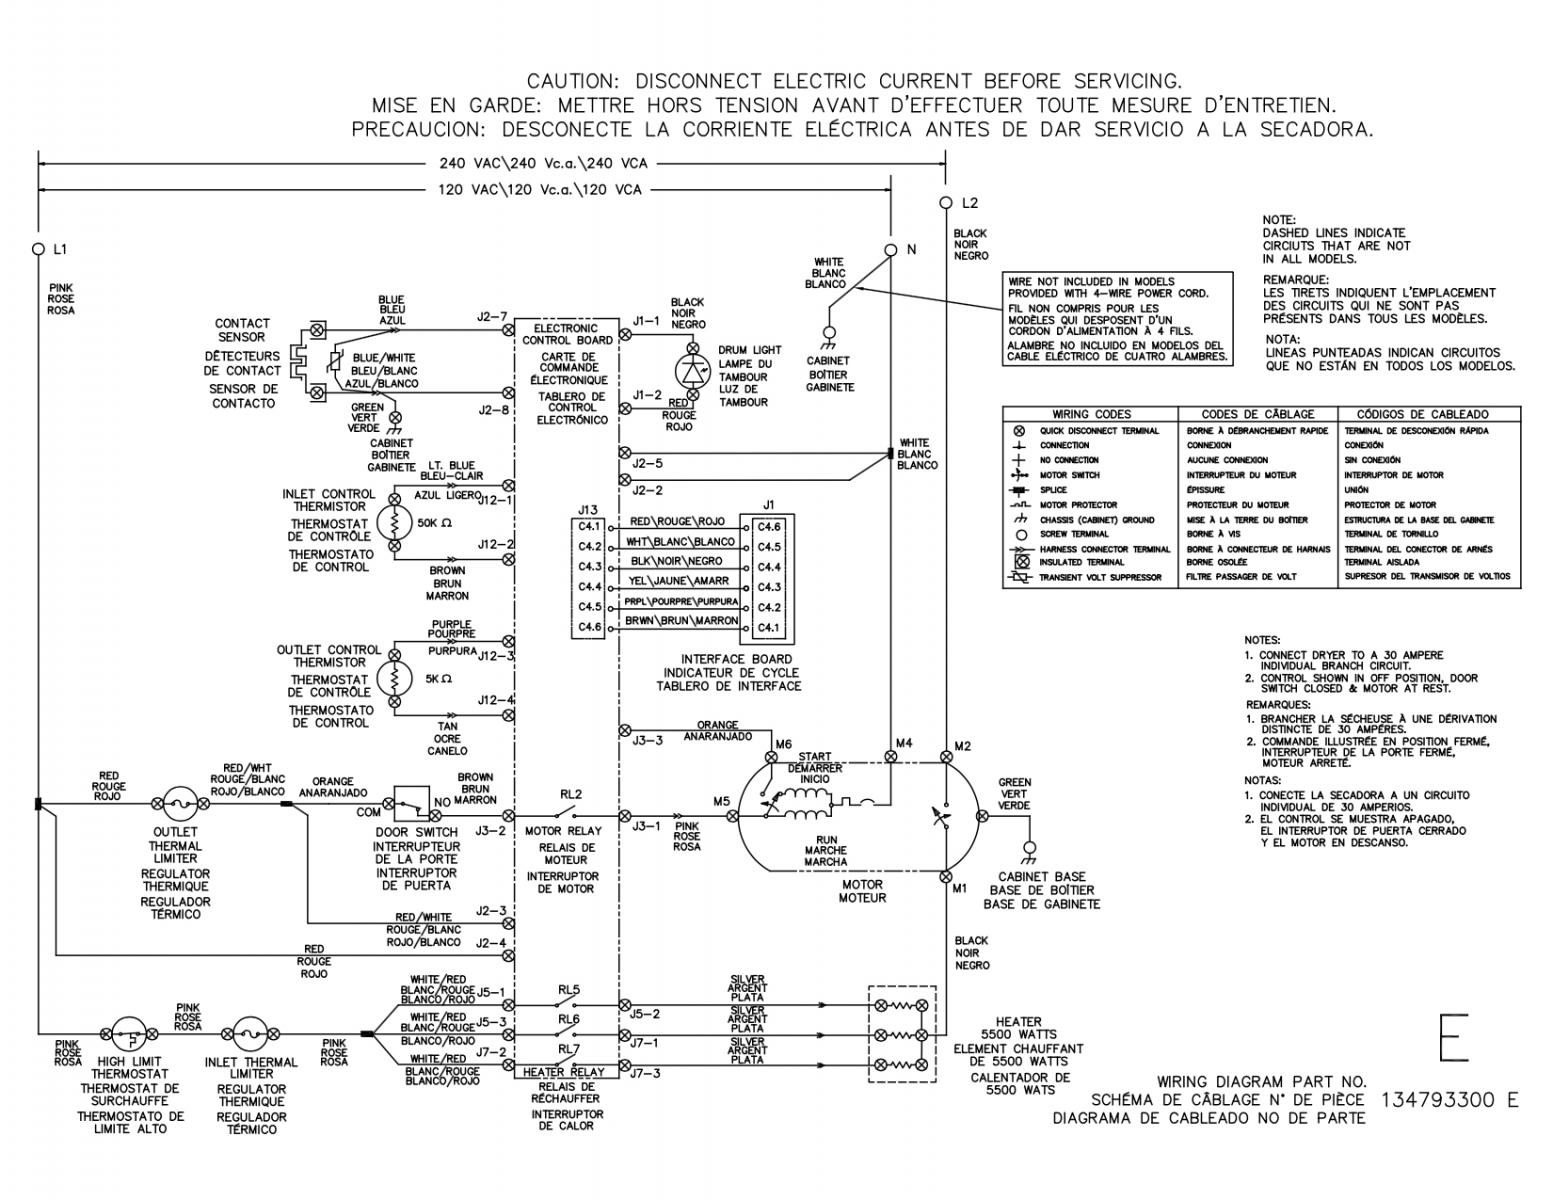 electrolux dryer wiring diagram crutchfield subwoofer repair appliantology org a master samurai tech appliance eigd50liw0 electric schematic